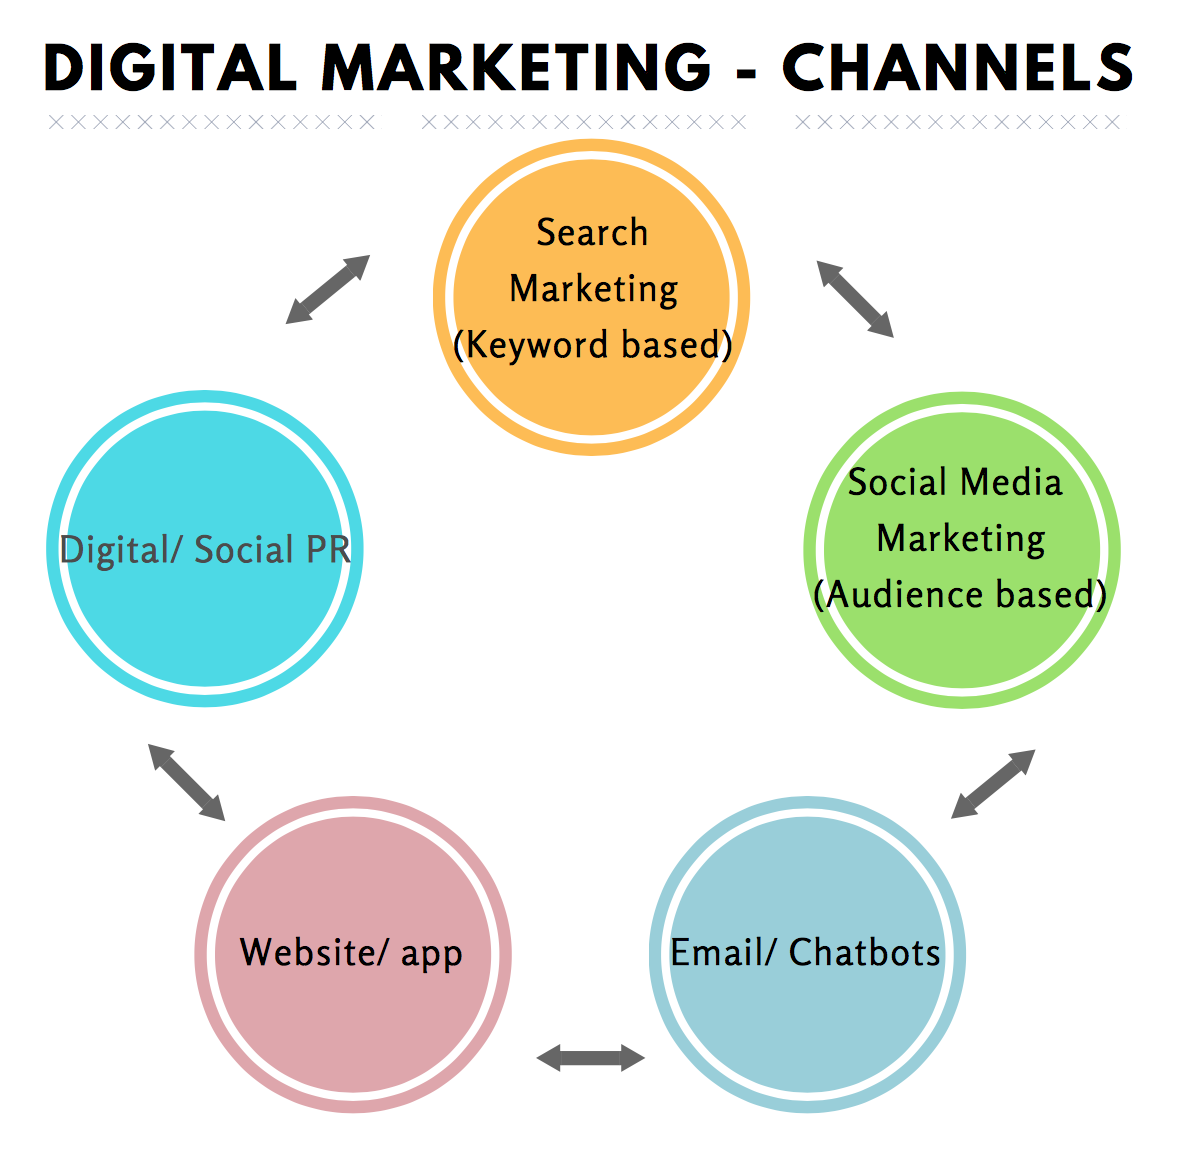 5 Channels of an Integrated Digital Marketing Strategy  Digital Marketing Channels